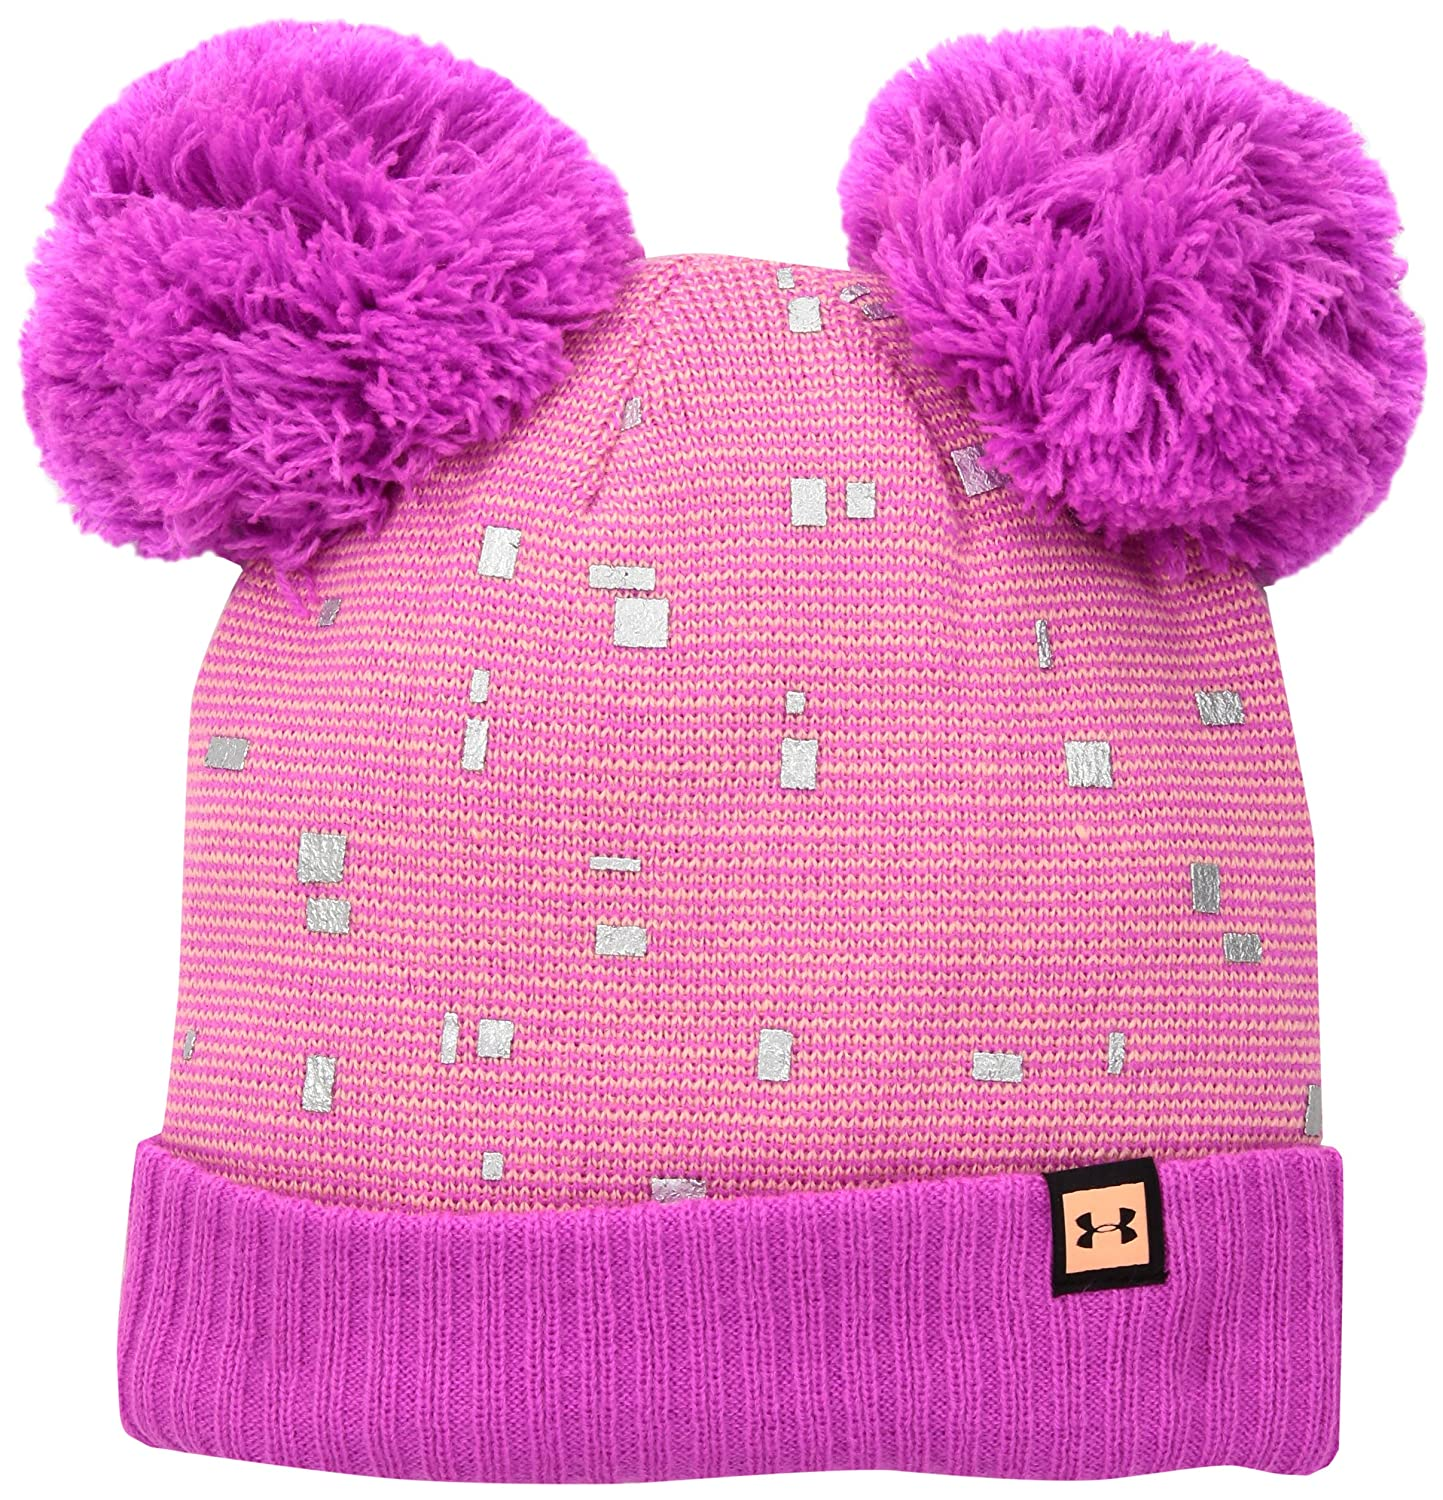 Under Armour Mä dchen Girls Double Pom Beanie Mü tze Black/White (001) OSFA 1318474